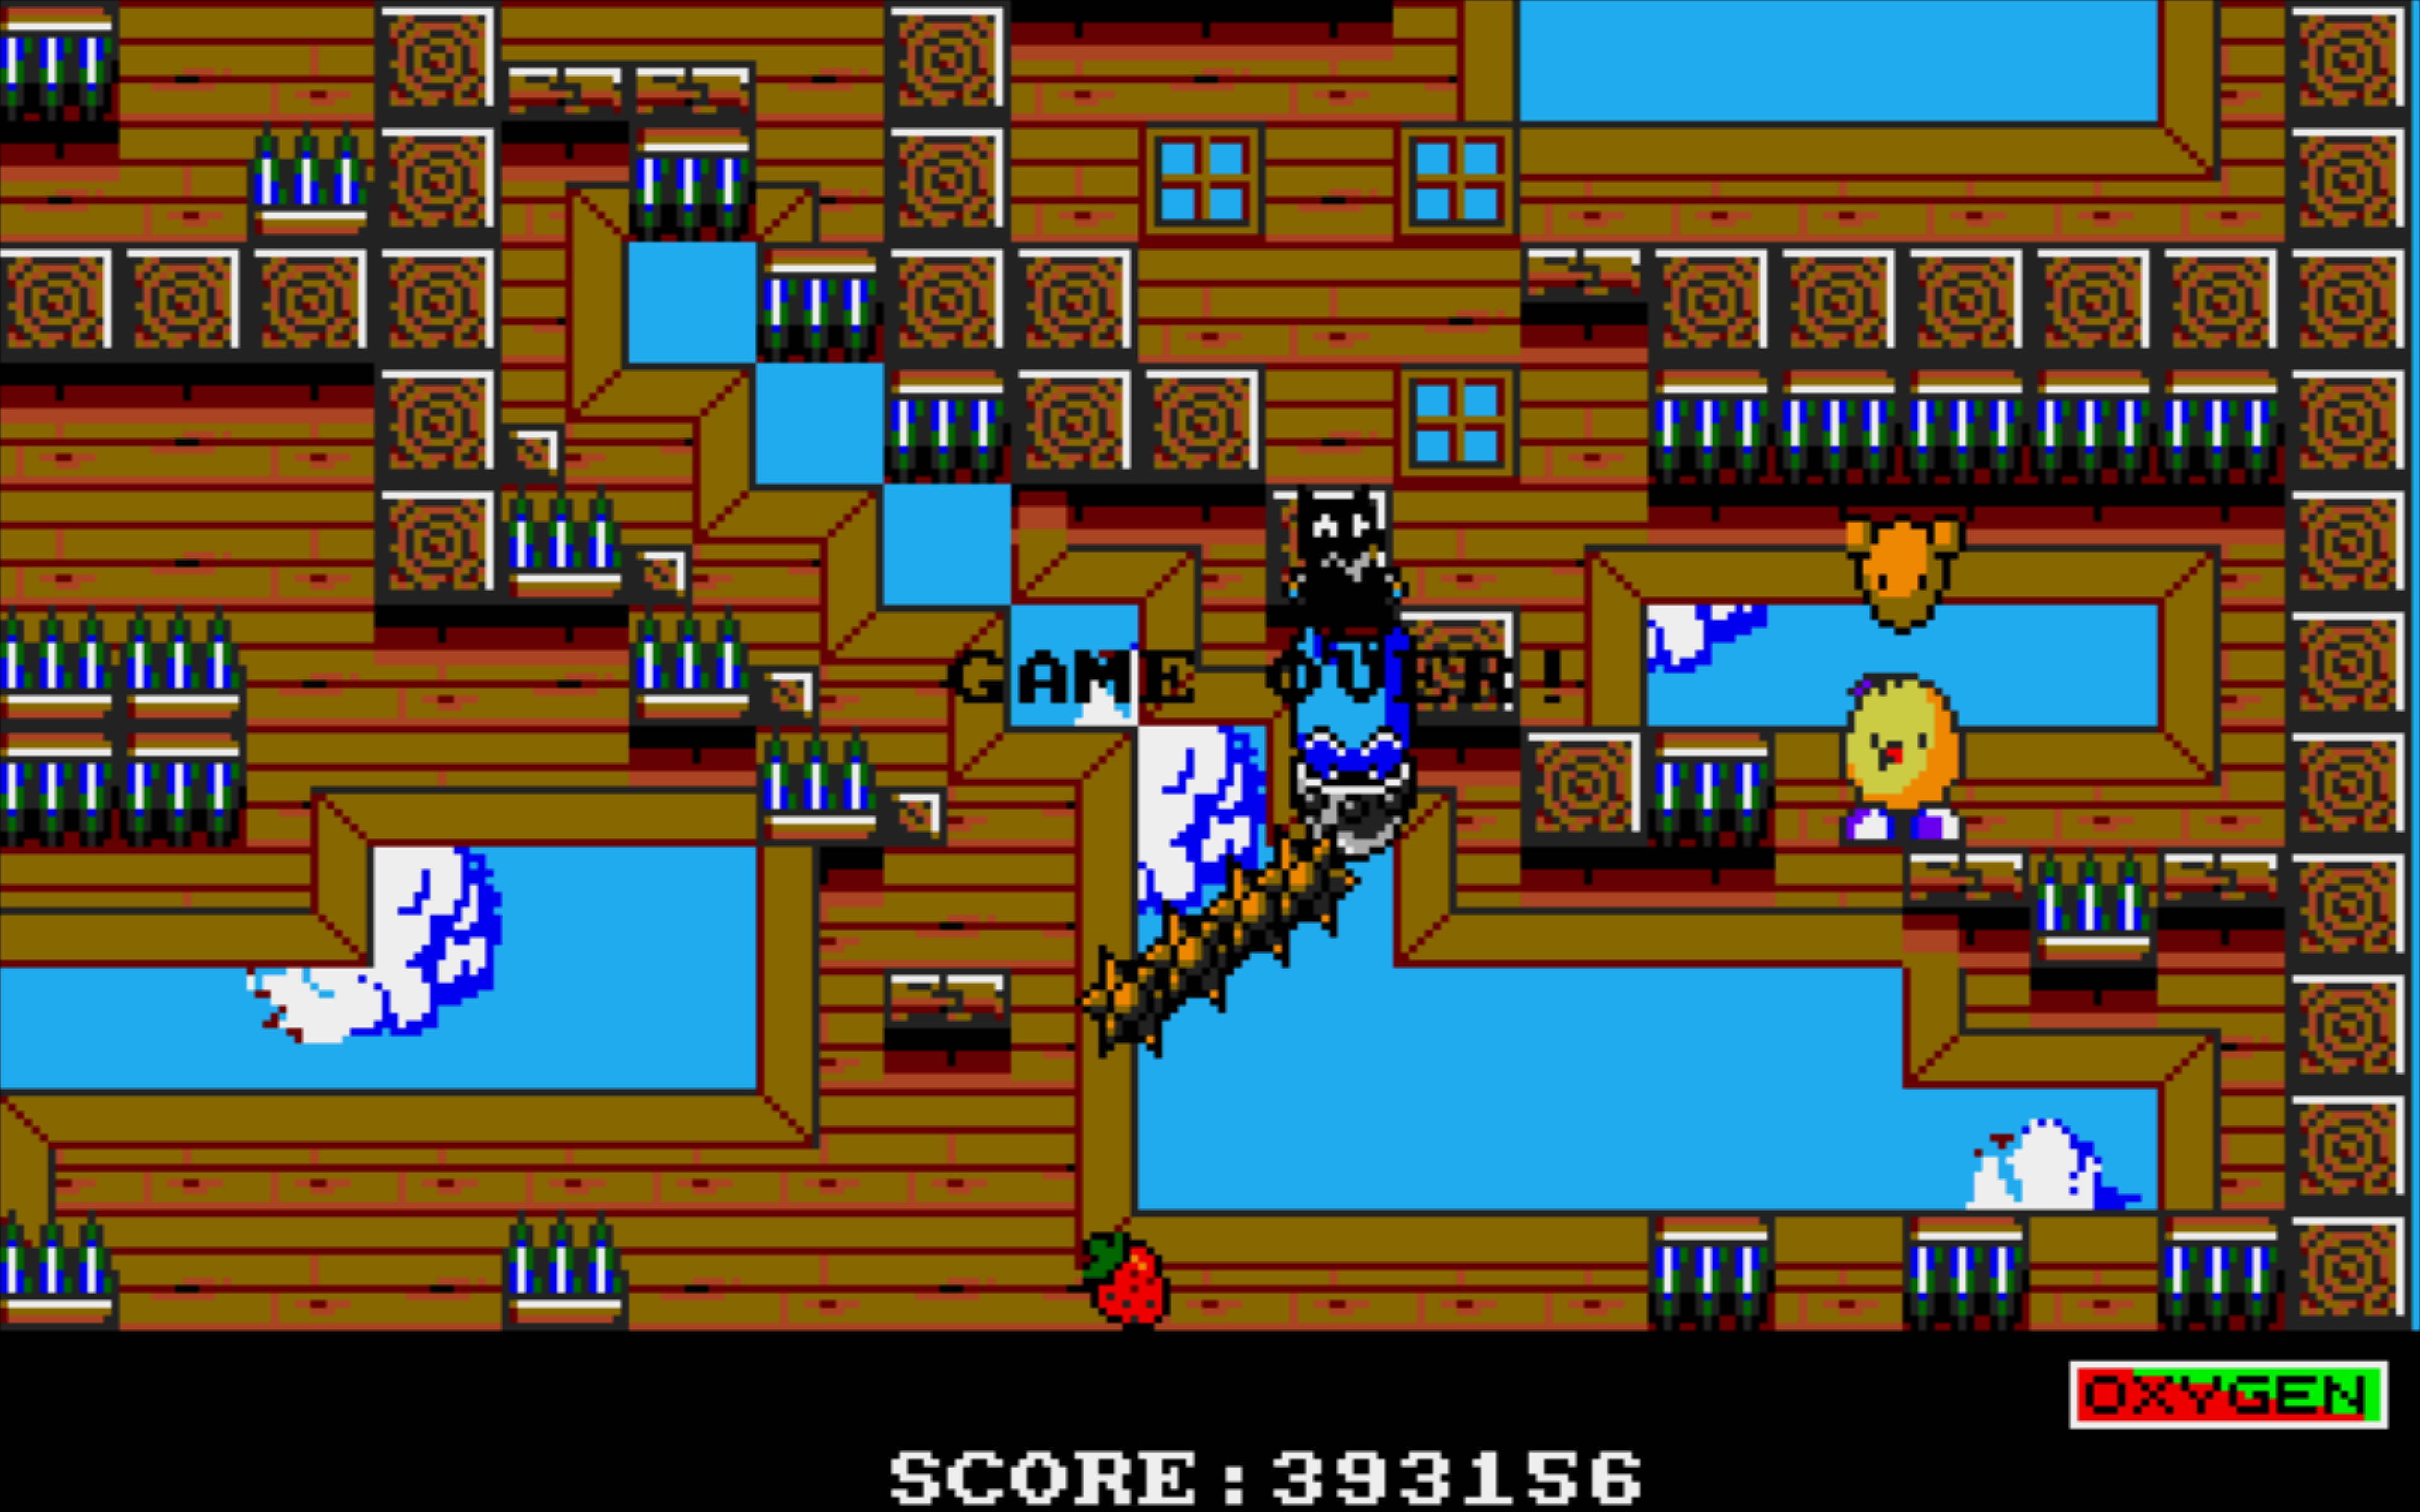 HoraceAndTheSpider: The New Zealand Story (Amiga Emulated) 393,156 points on 2015-08-23 15:30:57